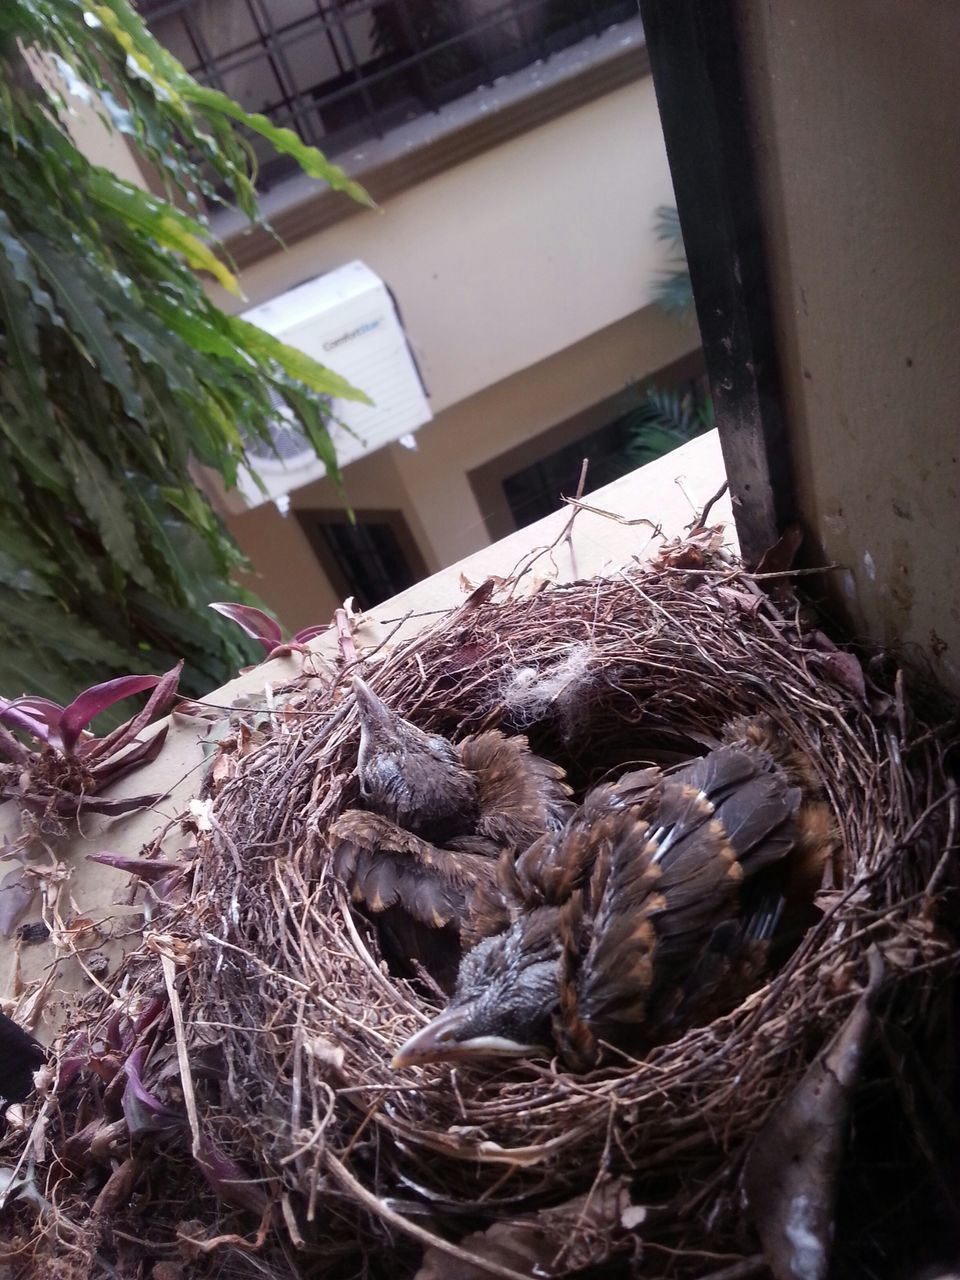 High Angle View Of Young Birds In Nest On Window